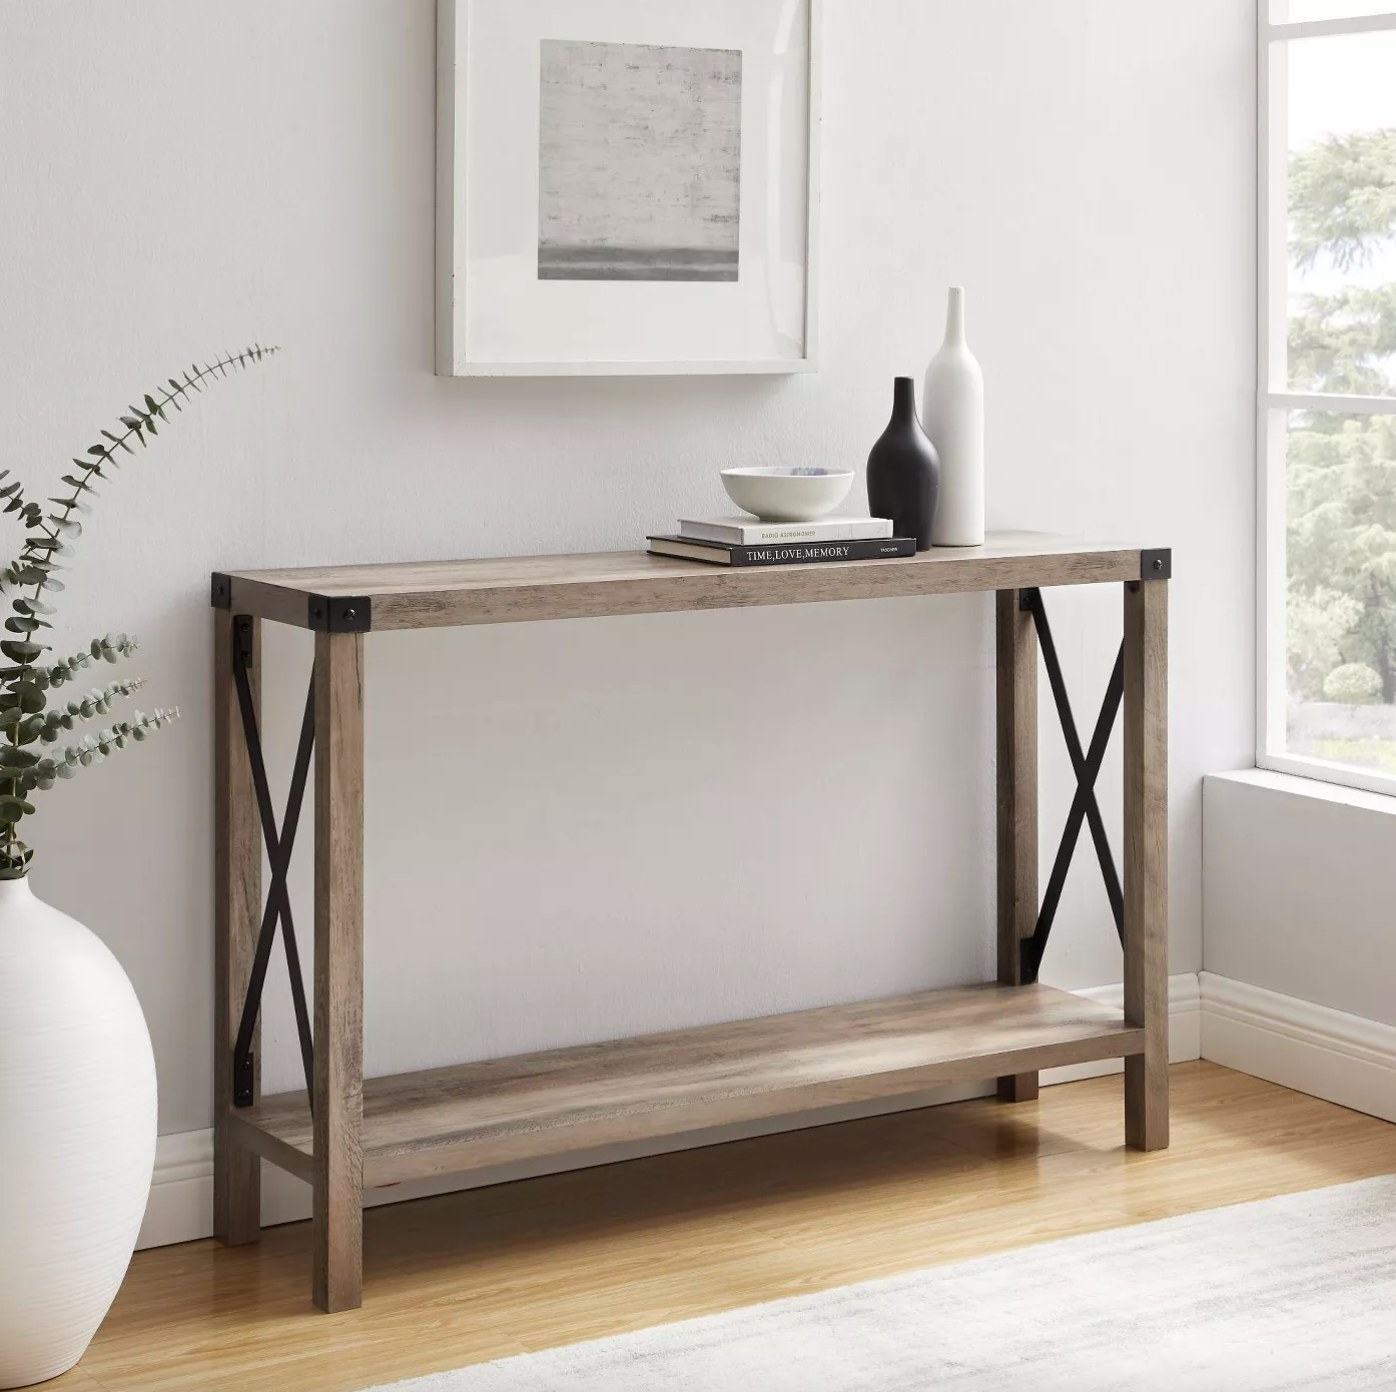 The farmhouse entry table in metal